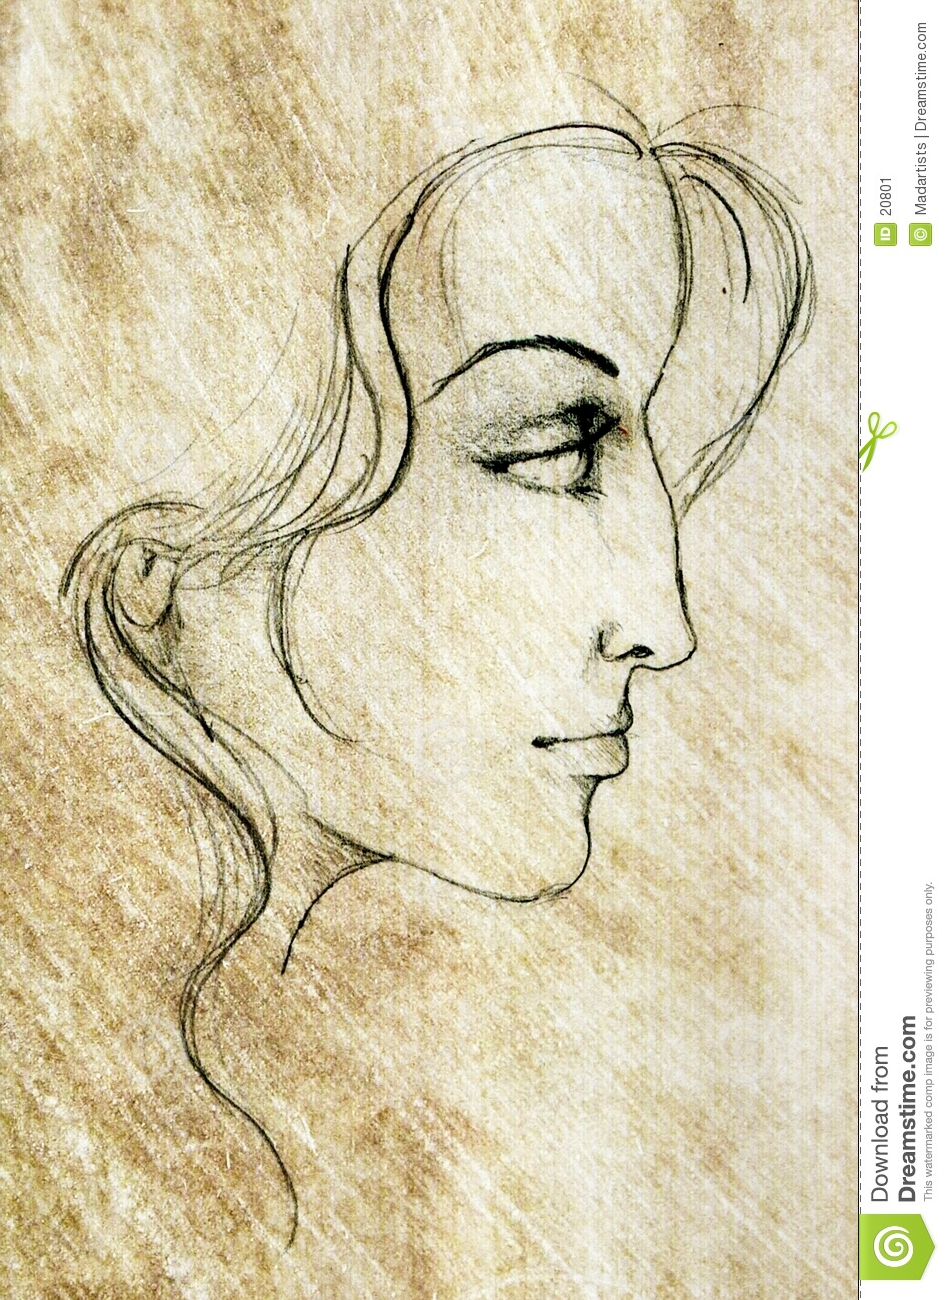 Woman Pencil Sketch : woman, pencil, sketch, Woman, Sketch, Drawing, Stock, Illustration, Features,, Drawing:, 20801